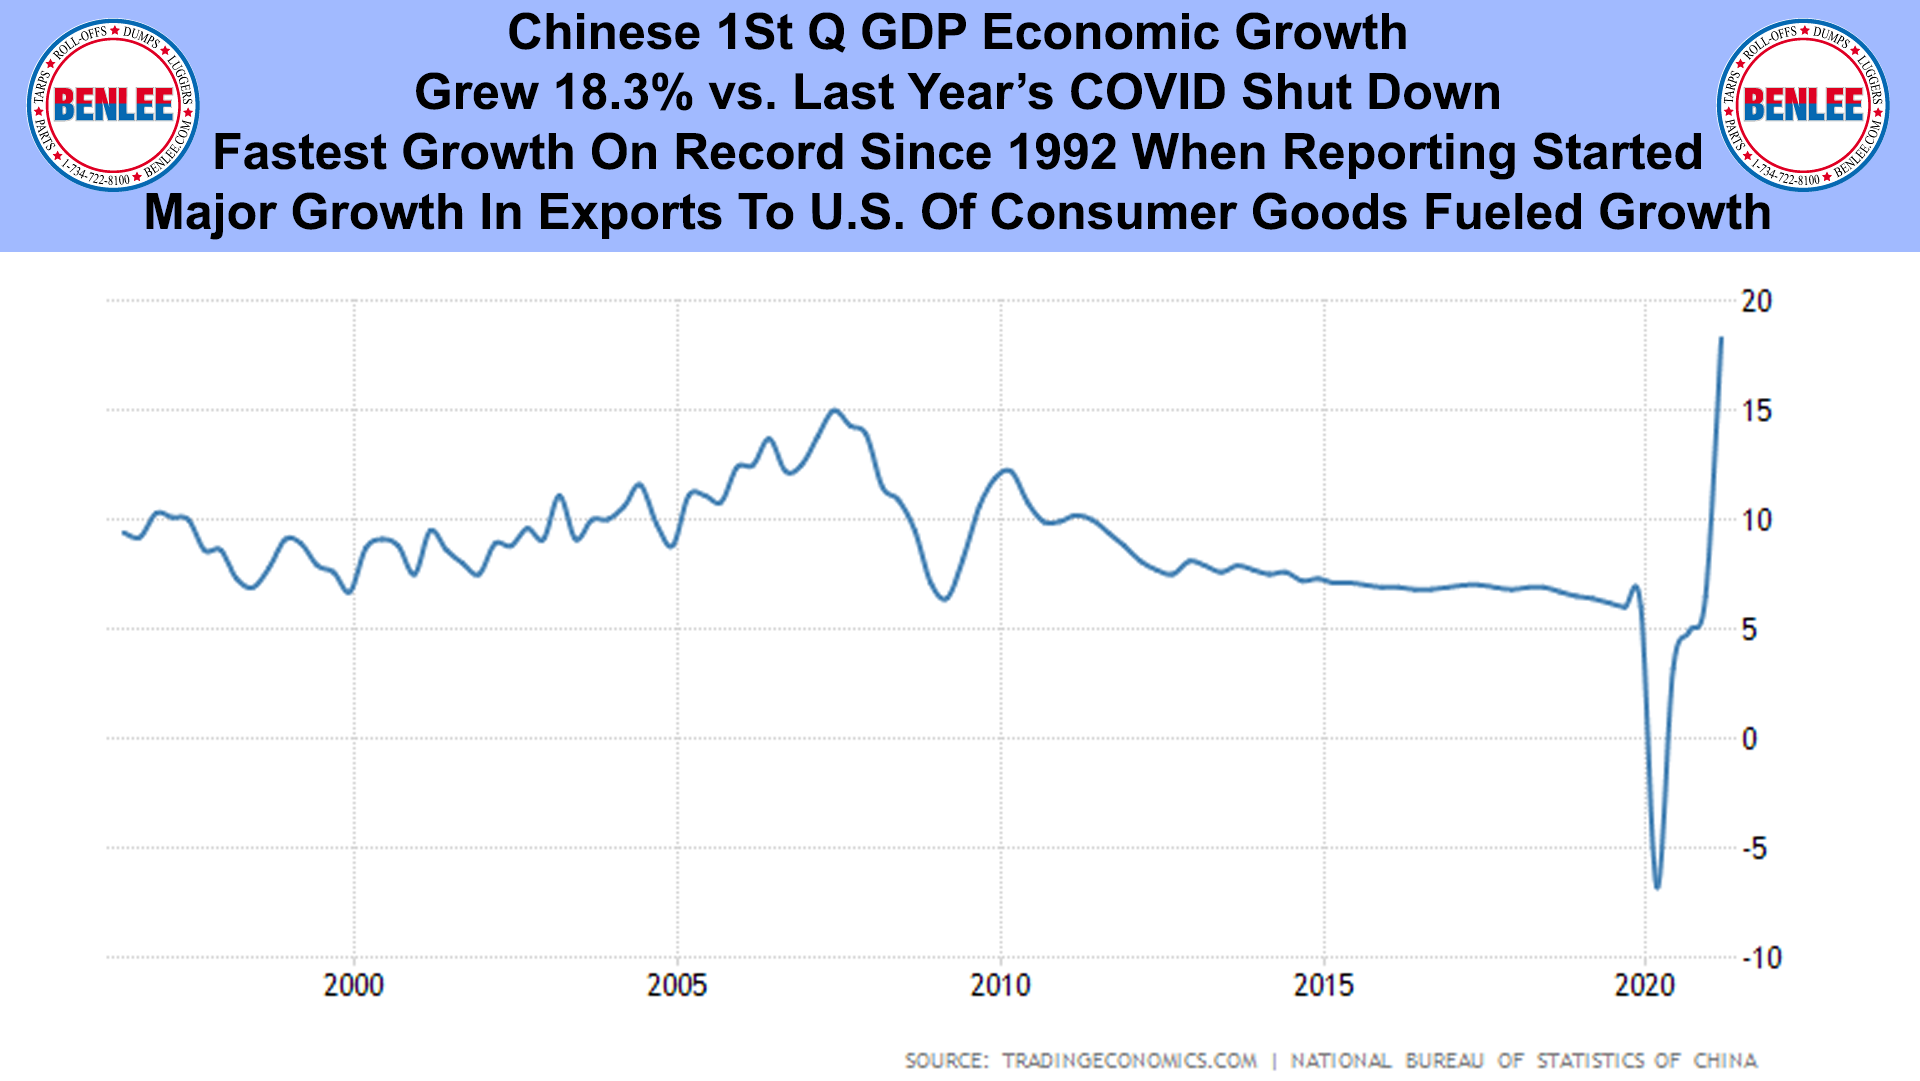 Chinese 1St Q GDP Economic Growth